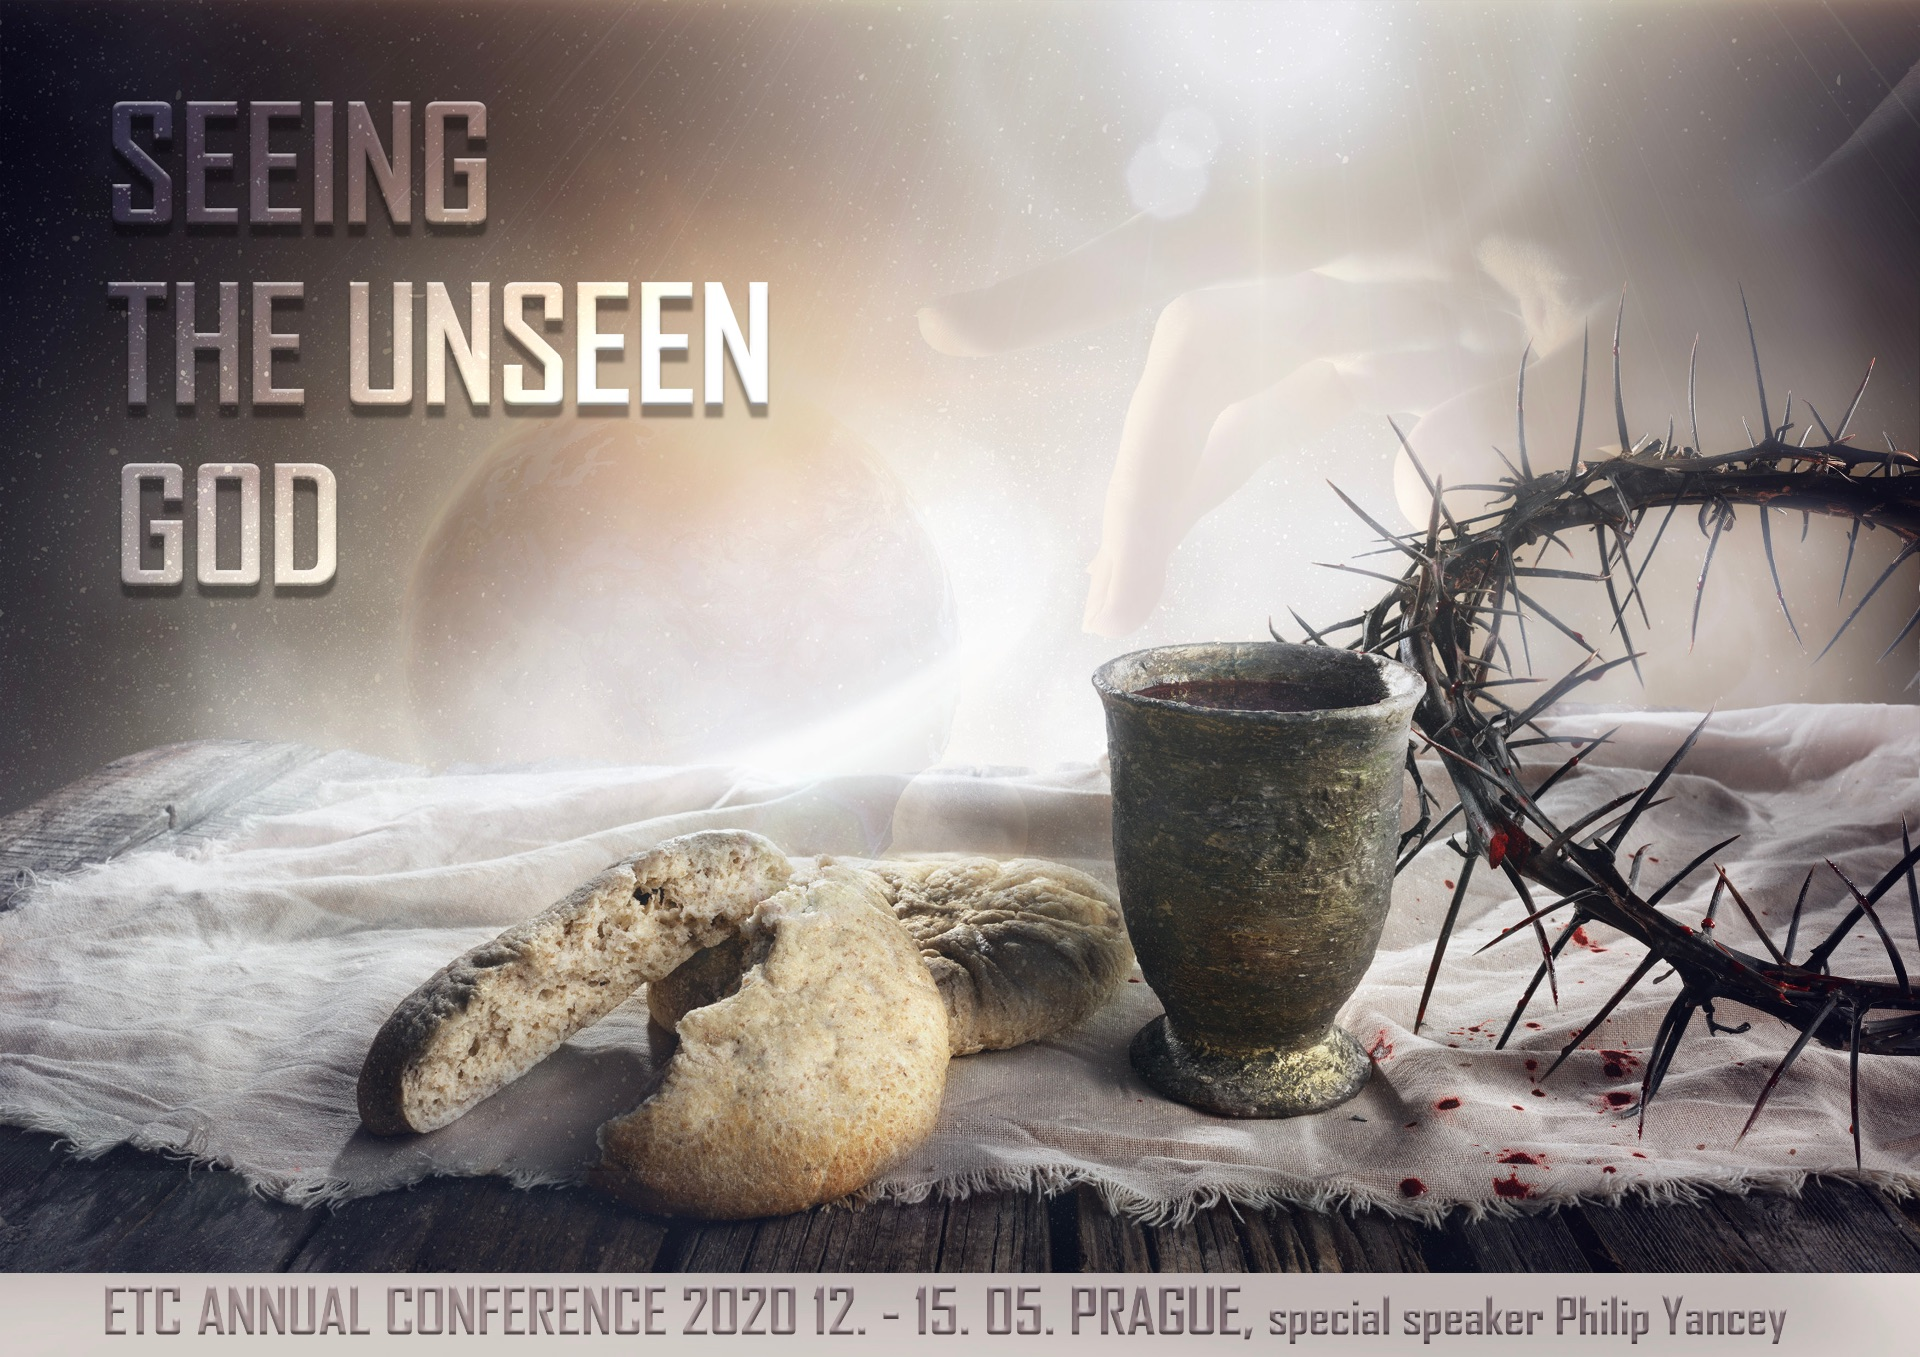 Seeing the Unseen God